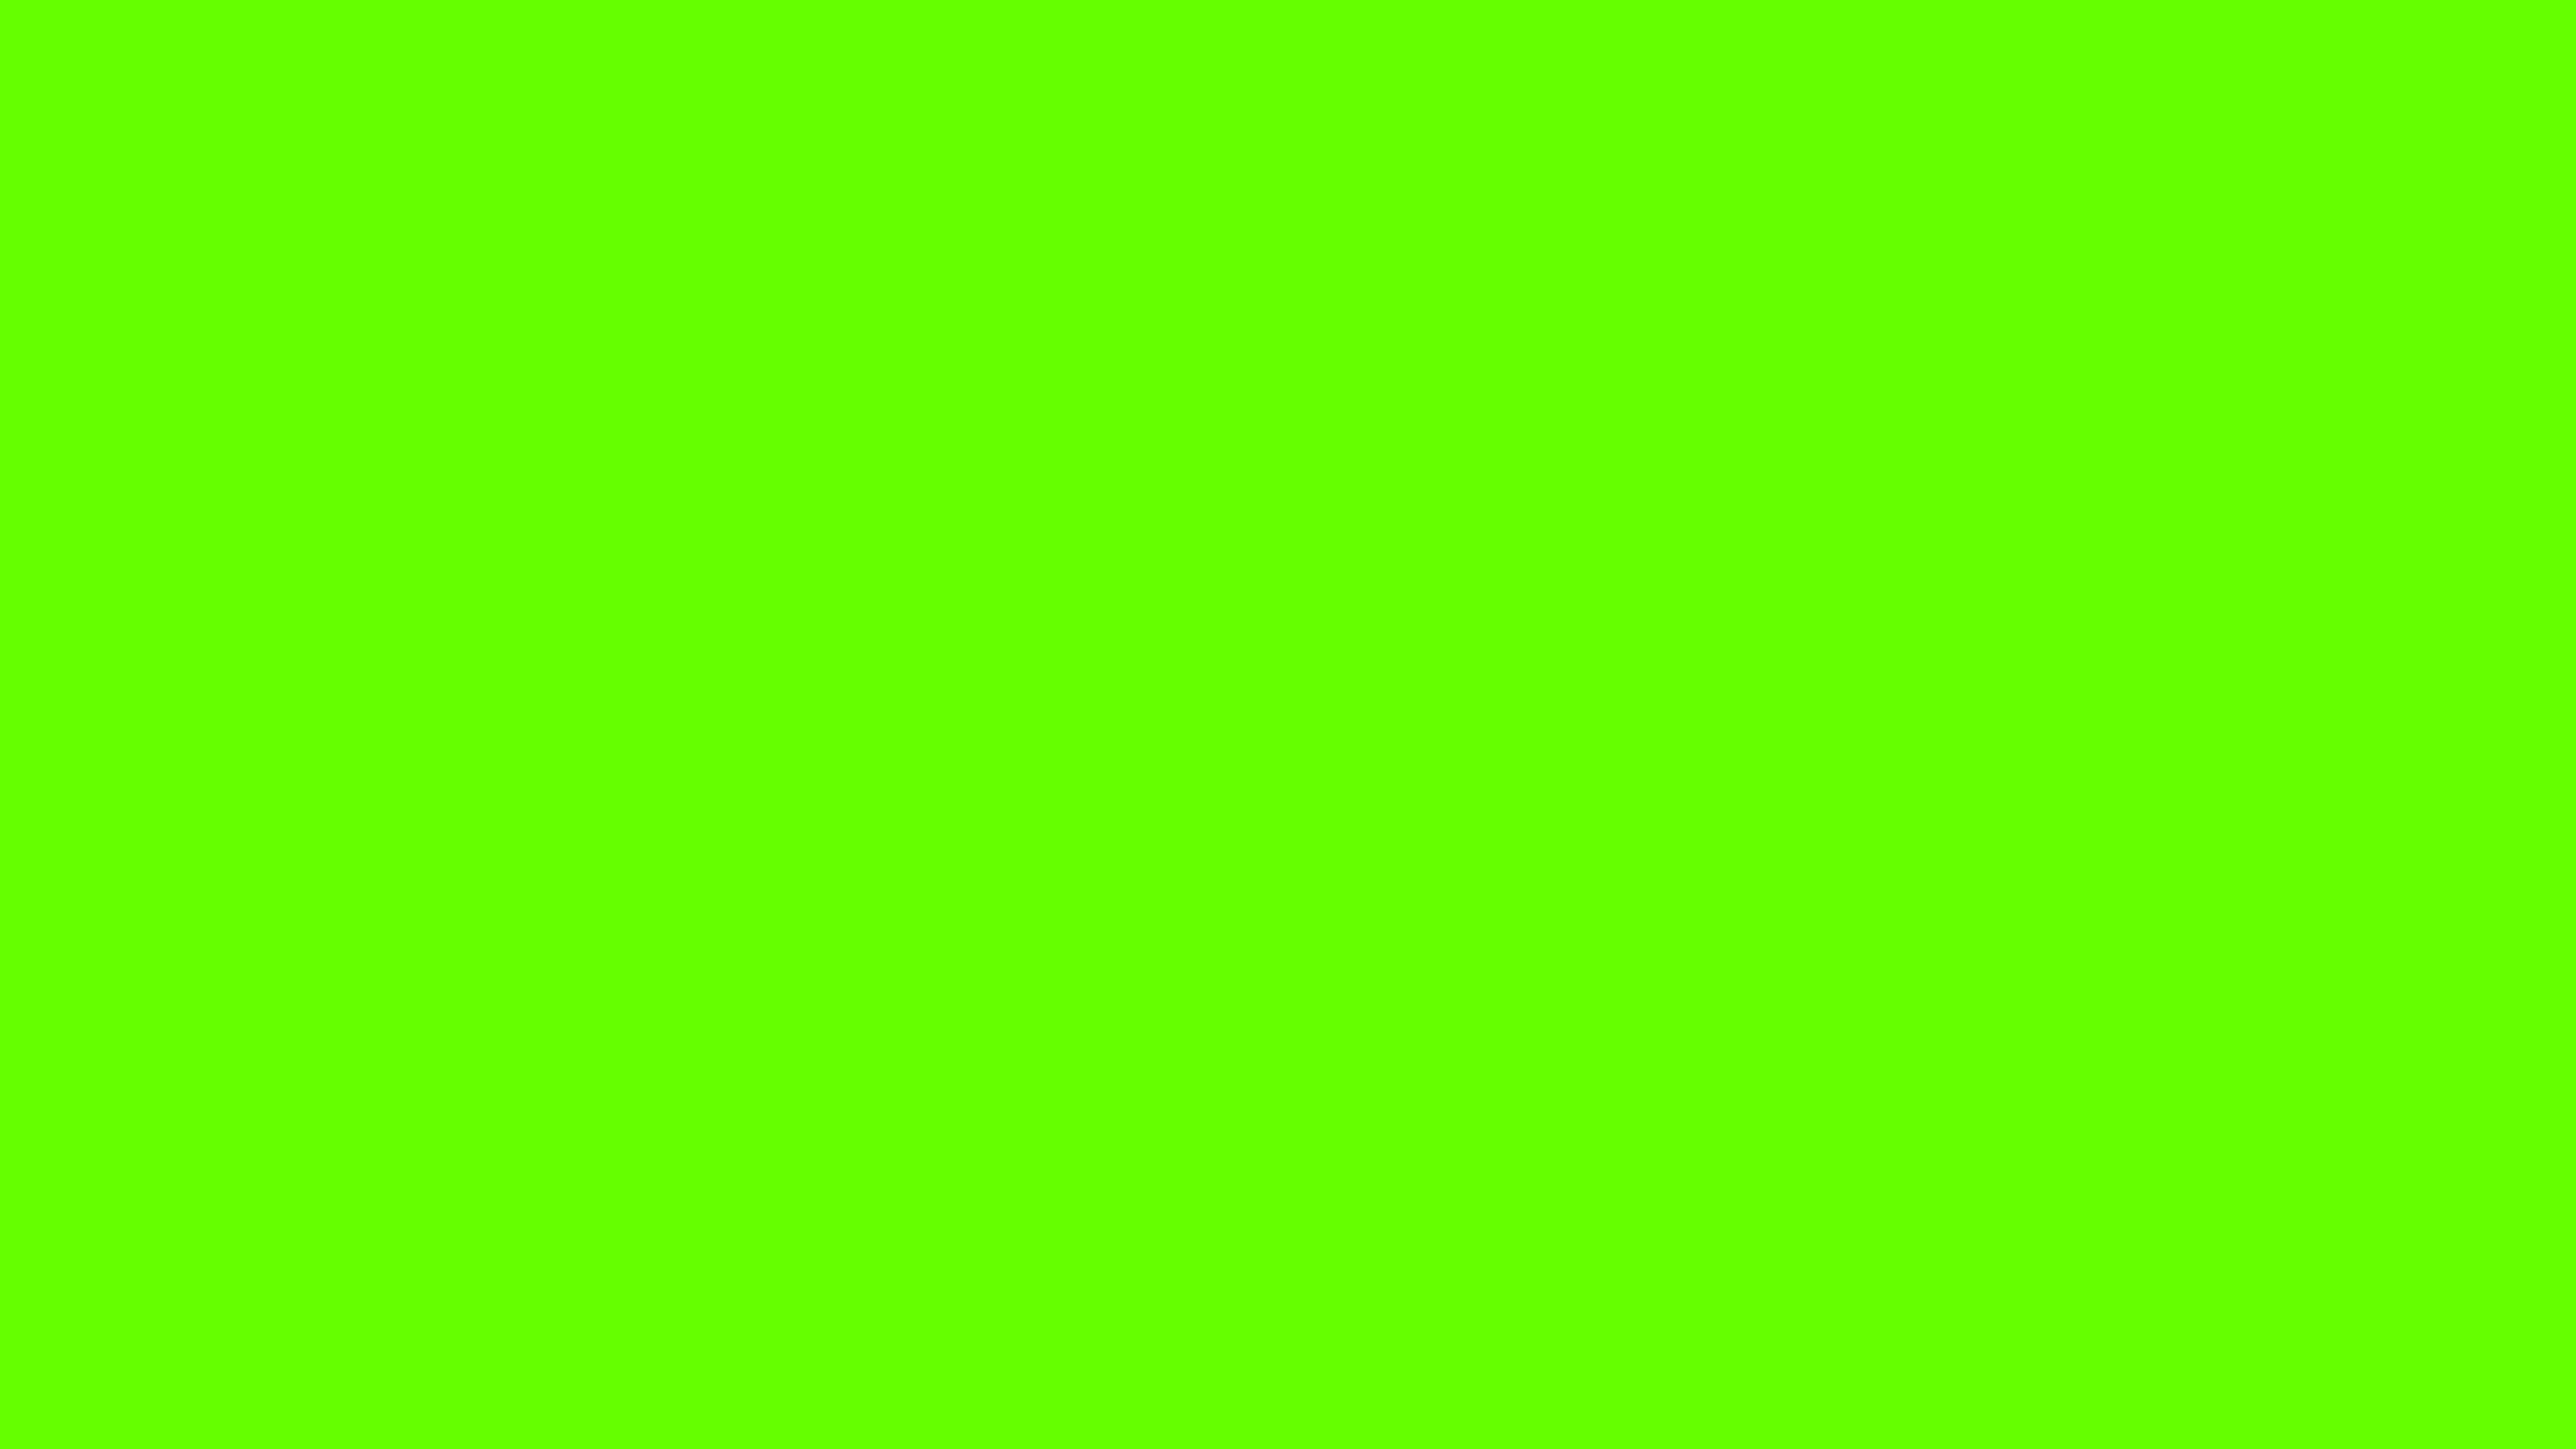 4096x2304 Bright Green Solid Color Background